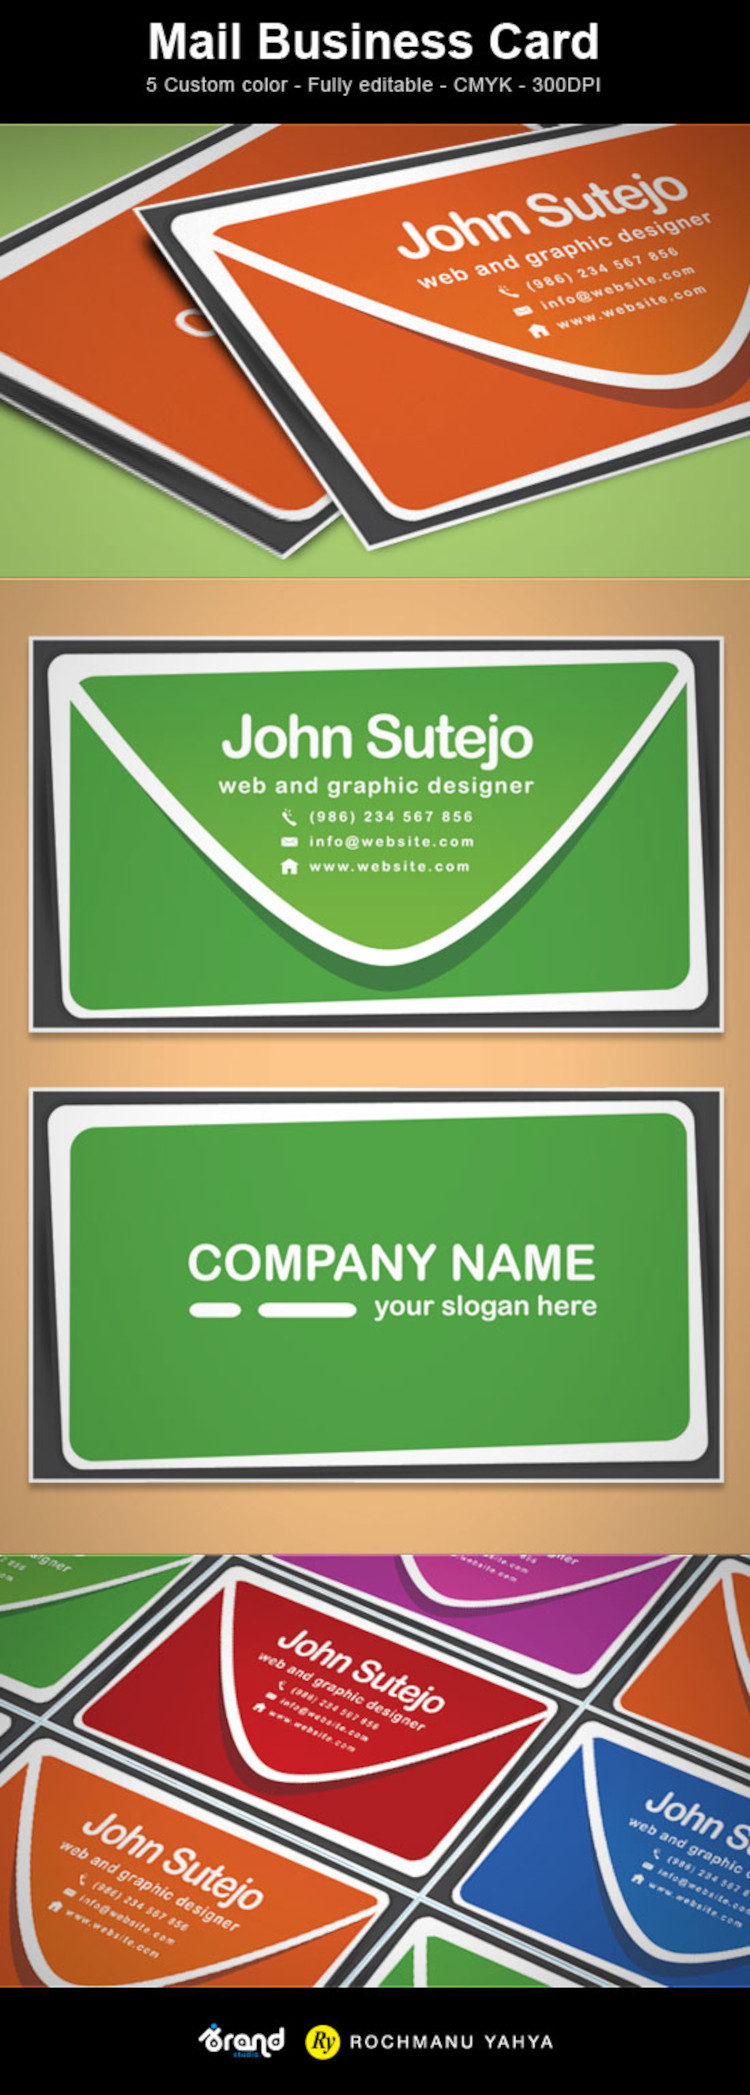 Free Mail Business Card Template